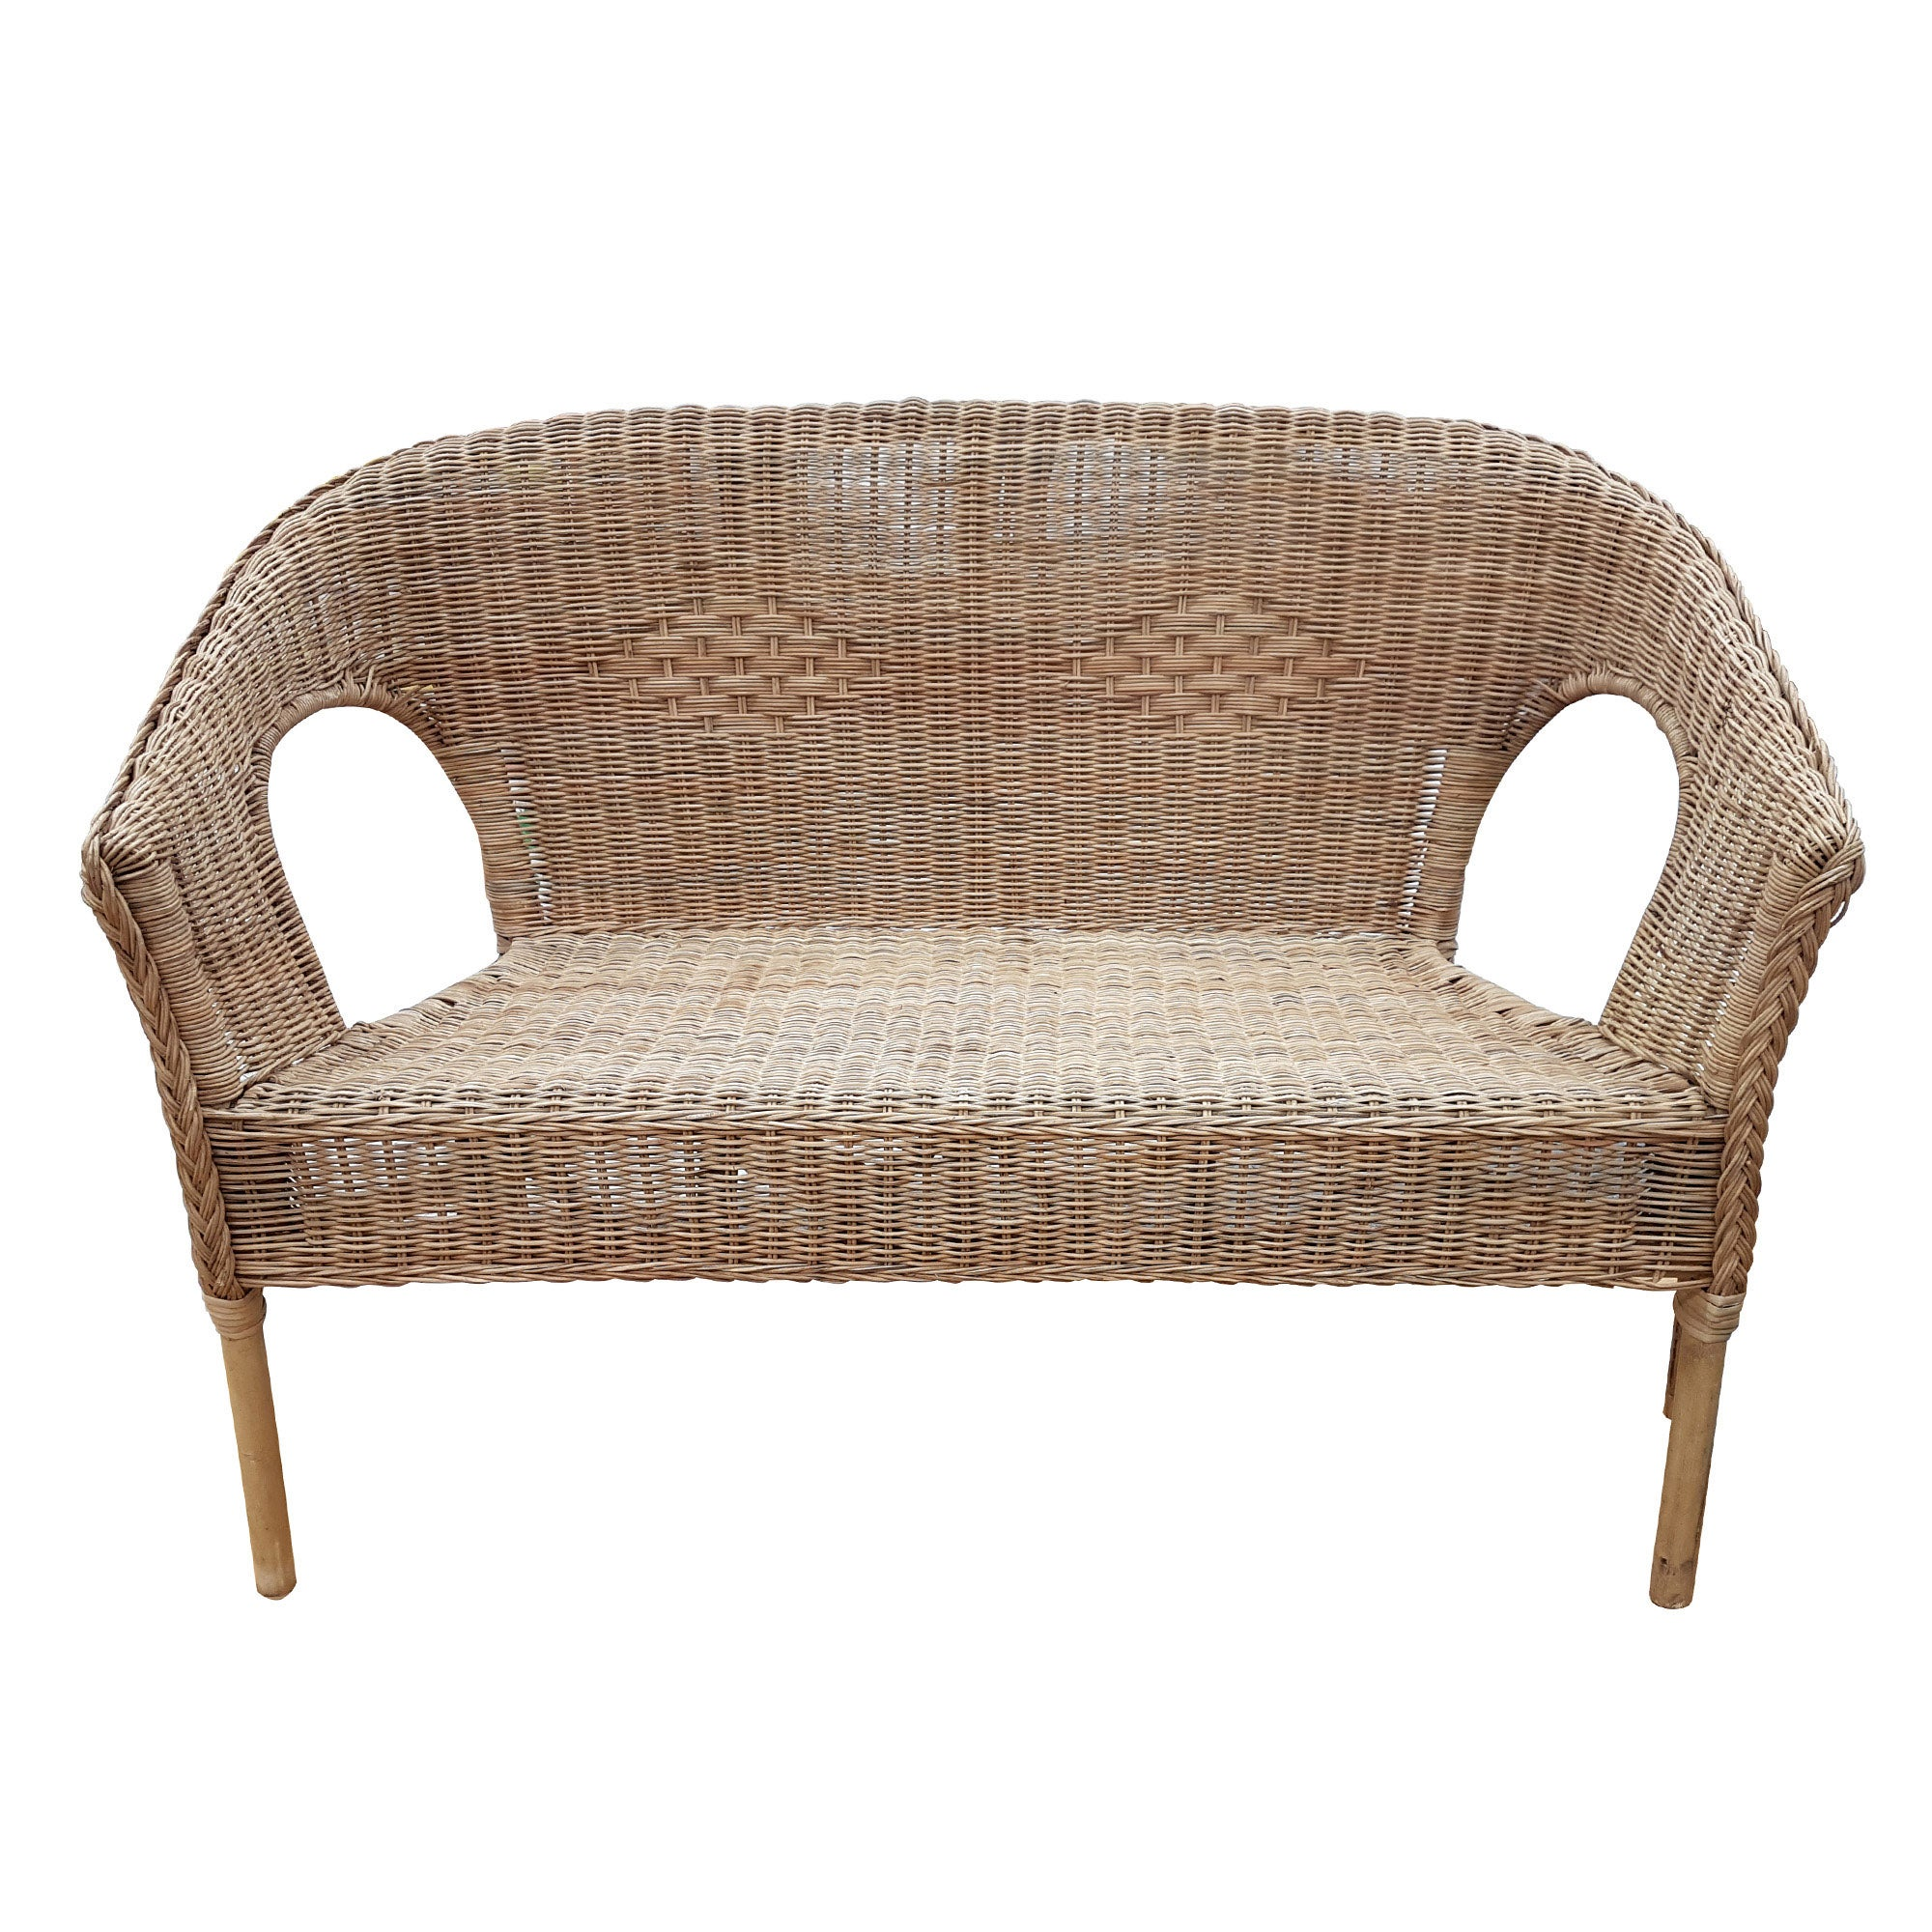 Photo of Java sofa bench natural